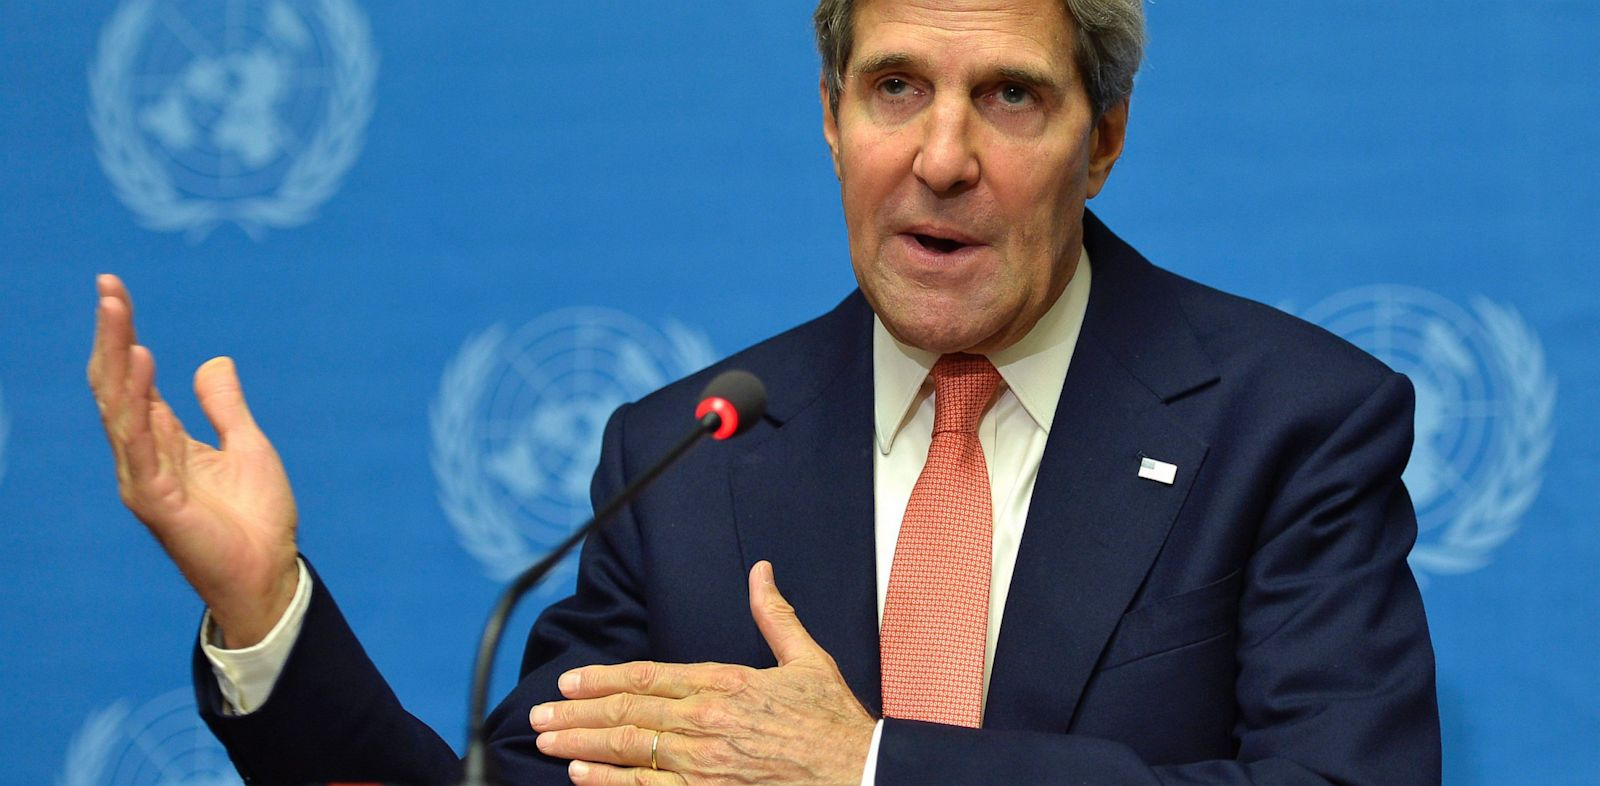 PHOTO: John Kerry, US Secretary of State, speaks during a press conference at the European headquarters of the United Nations in Geneva, Switzerland, Sept. 13, 2013